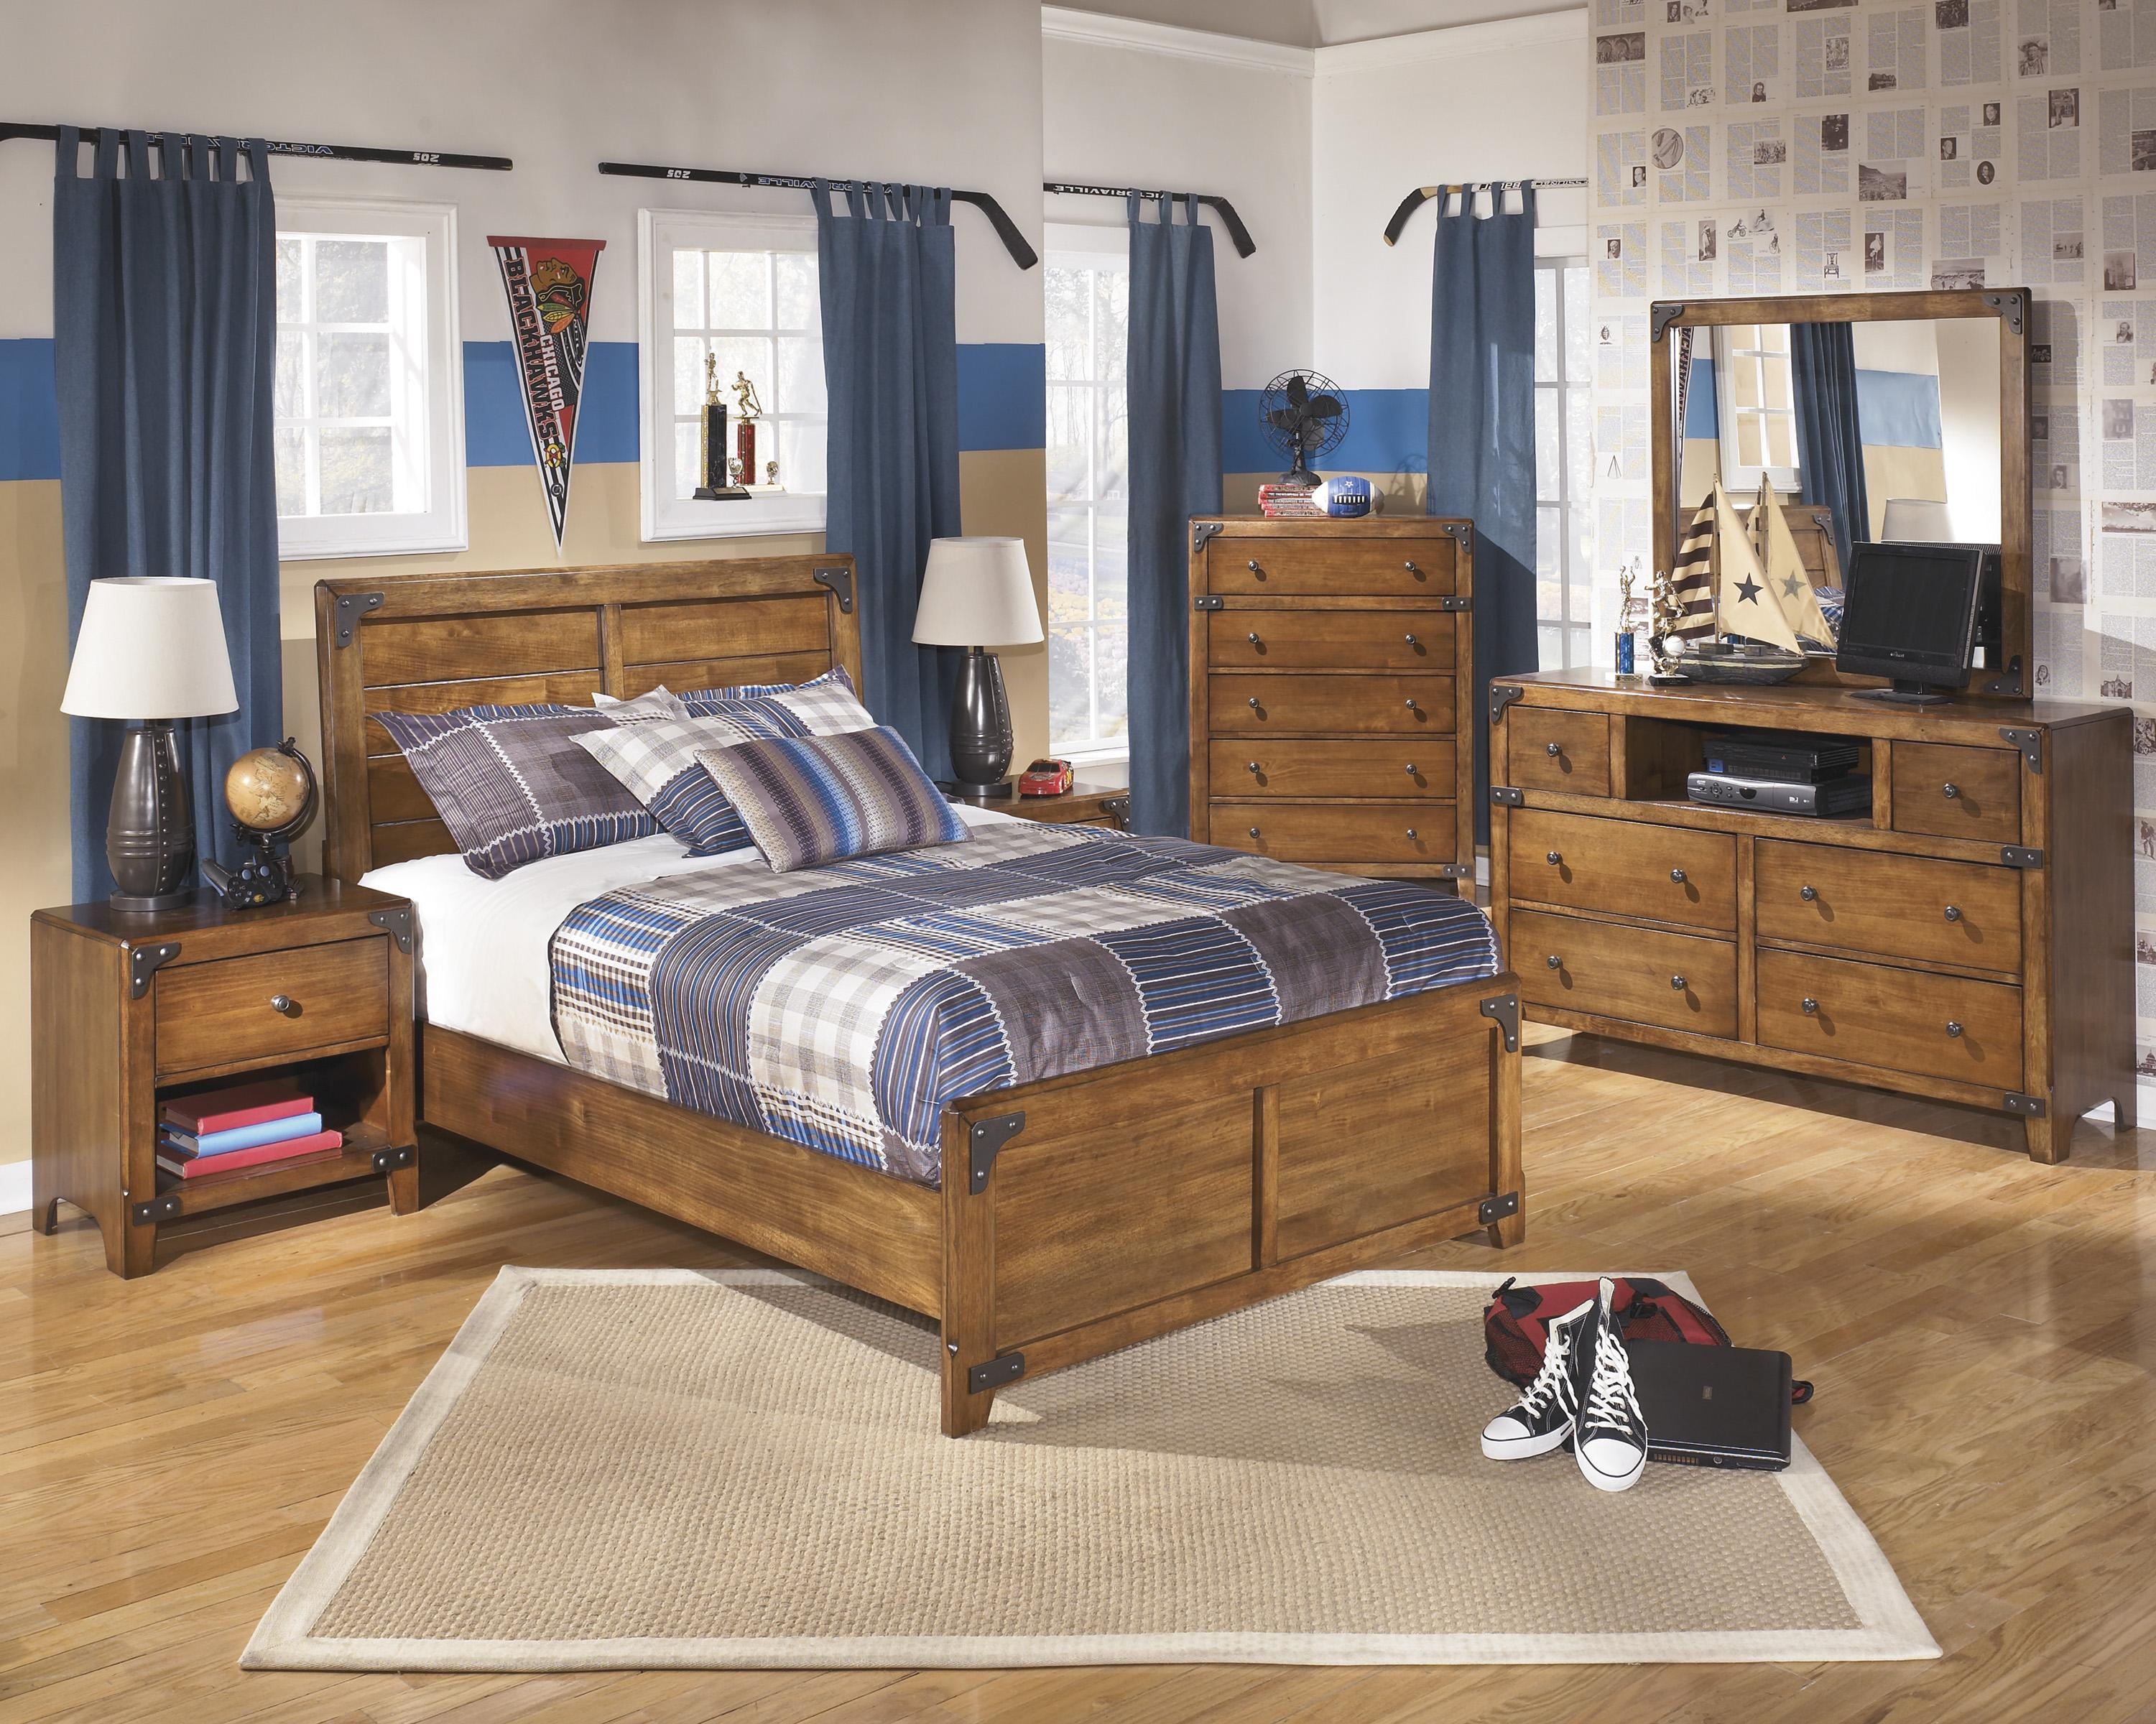 Signature Design by Ashley Delburne Full Bedroom Group - Item Number: B362 F Bedroom Group 2